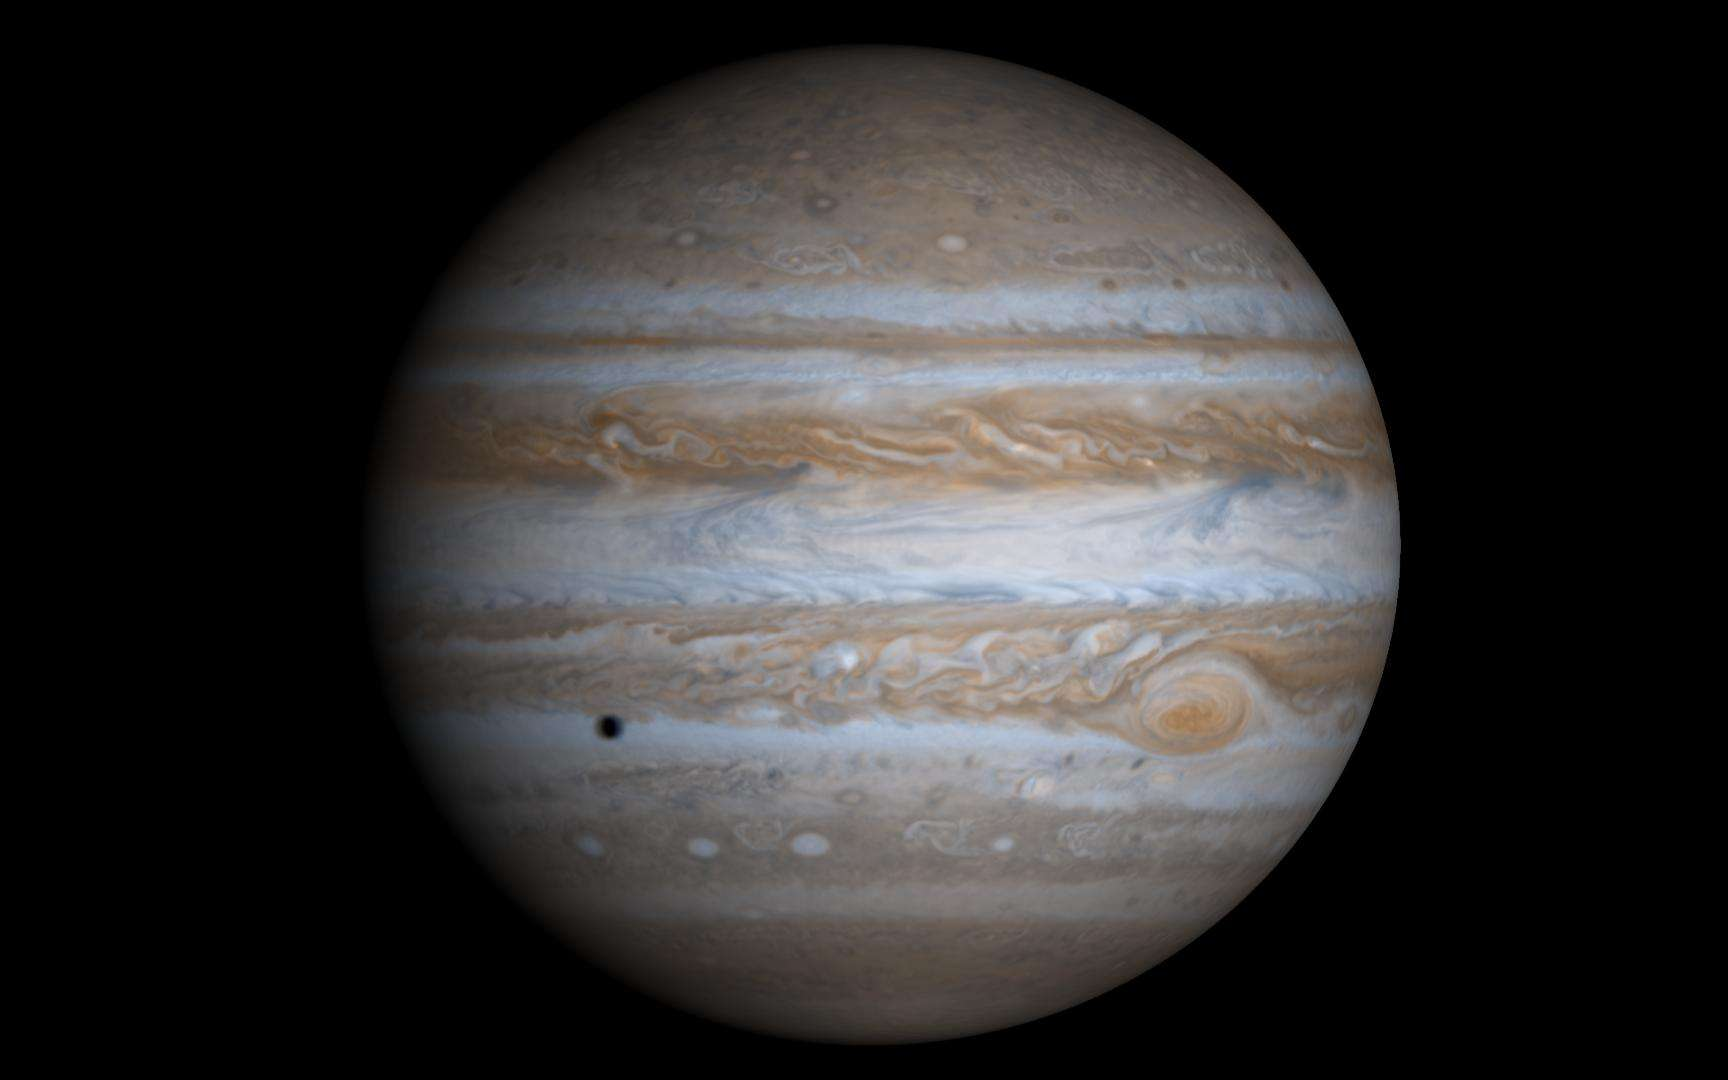 Une image réelle de Jupiter créée à partir de 4 photos prises par la sonde Cassini. Crédit : NASA/JPL/University of Arizona